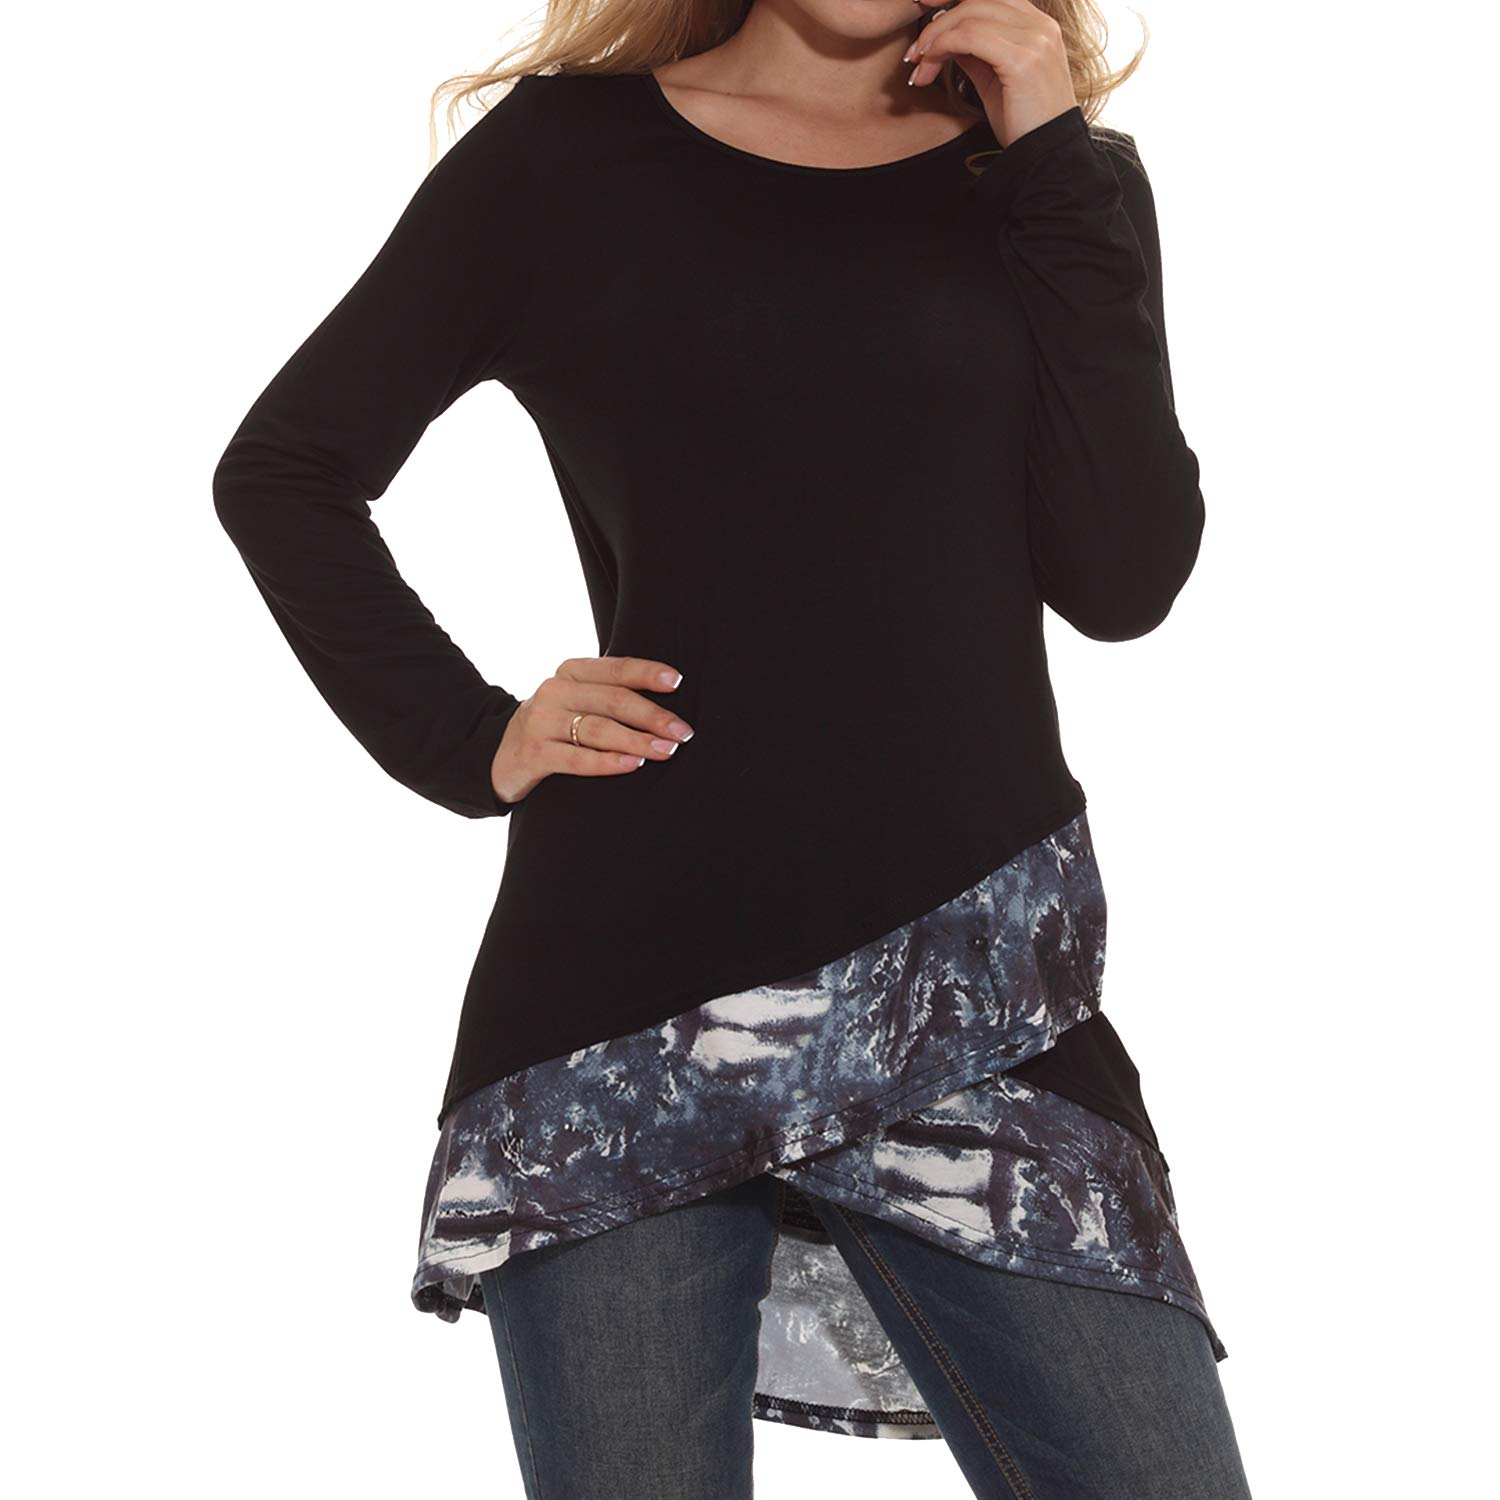 Black Sufiya Womens Long Sleeve Dressy Tunic Tops Scoop Neck Casual Layered Shirts